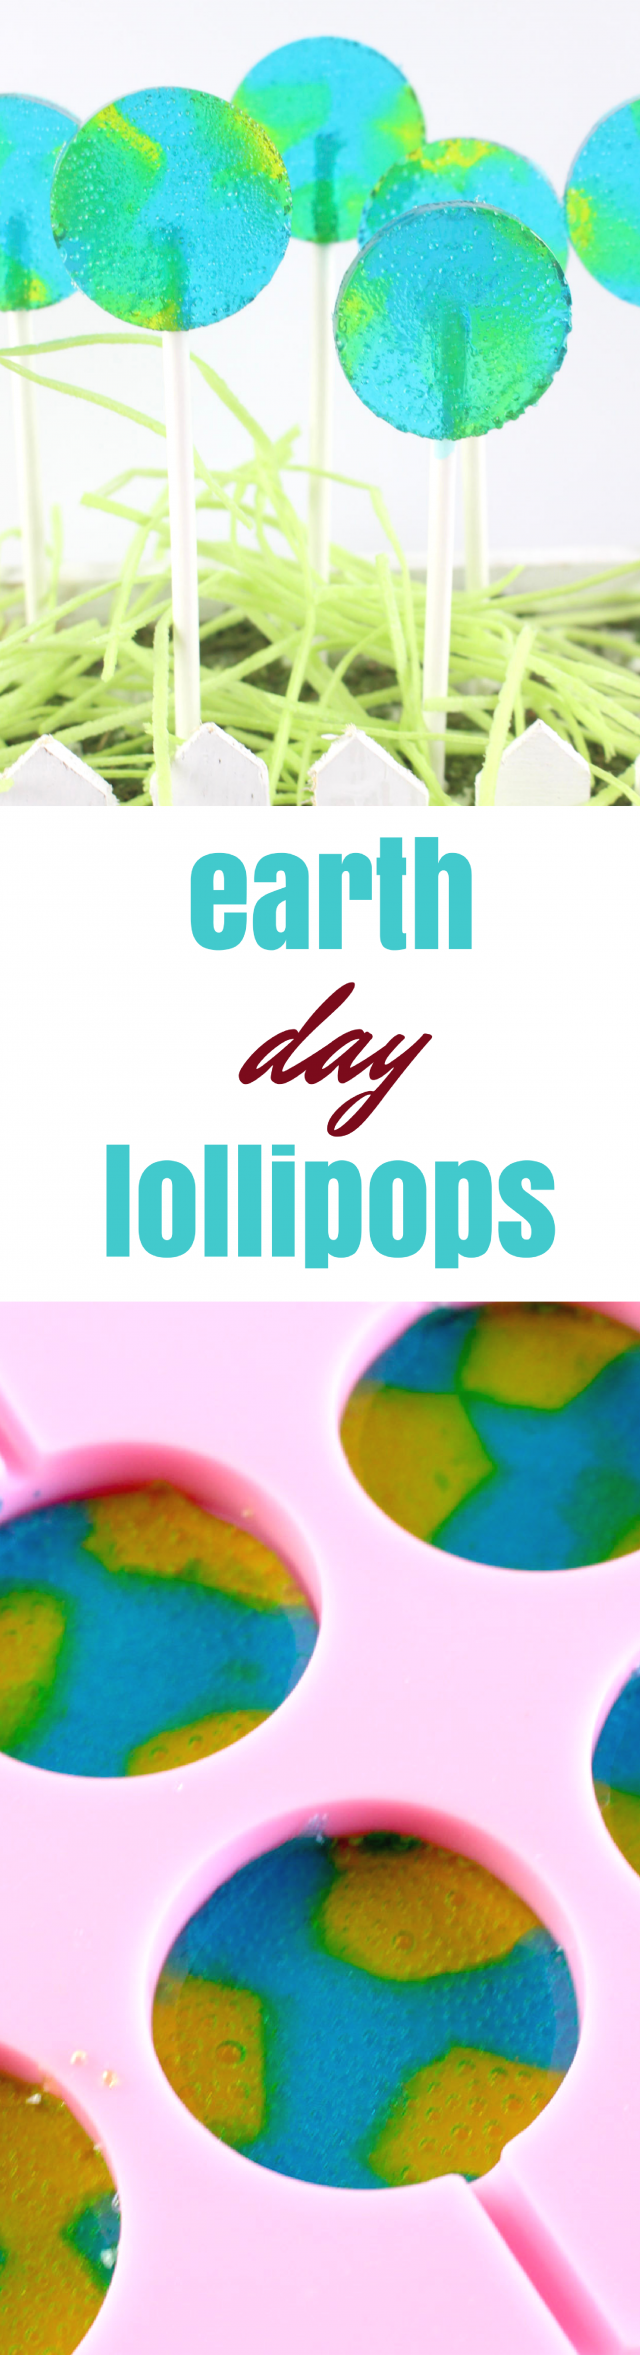 Earth Day is coming up soon, so we wanted to put something fun together for this special day. We think your kids will love it, too. Earth Day lollipops!